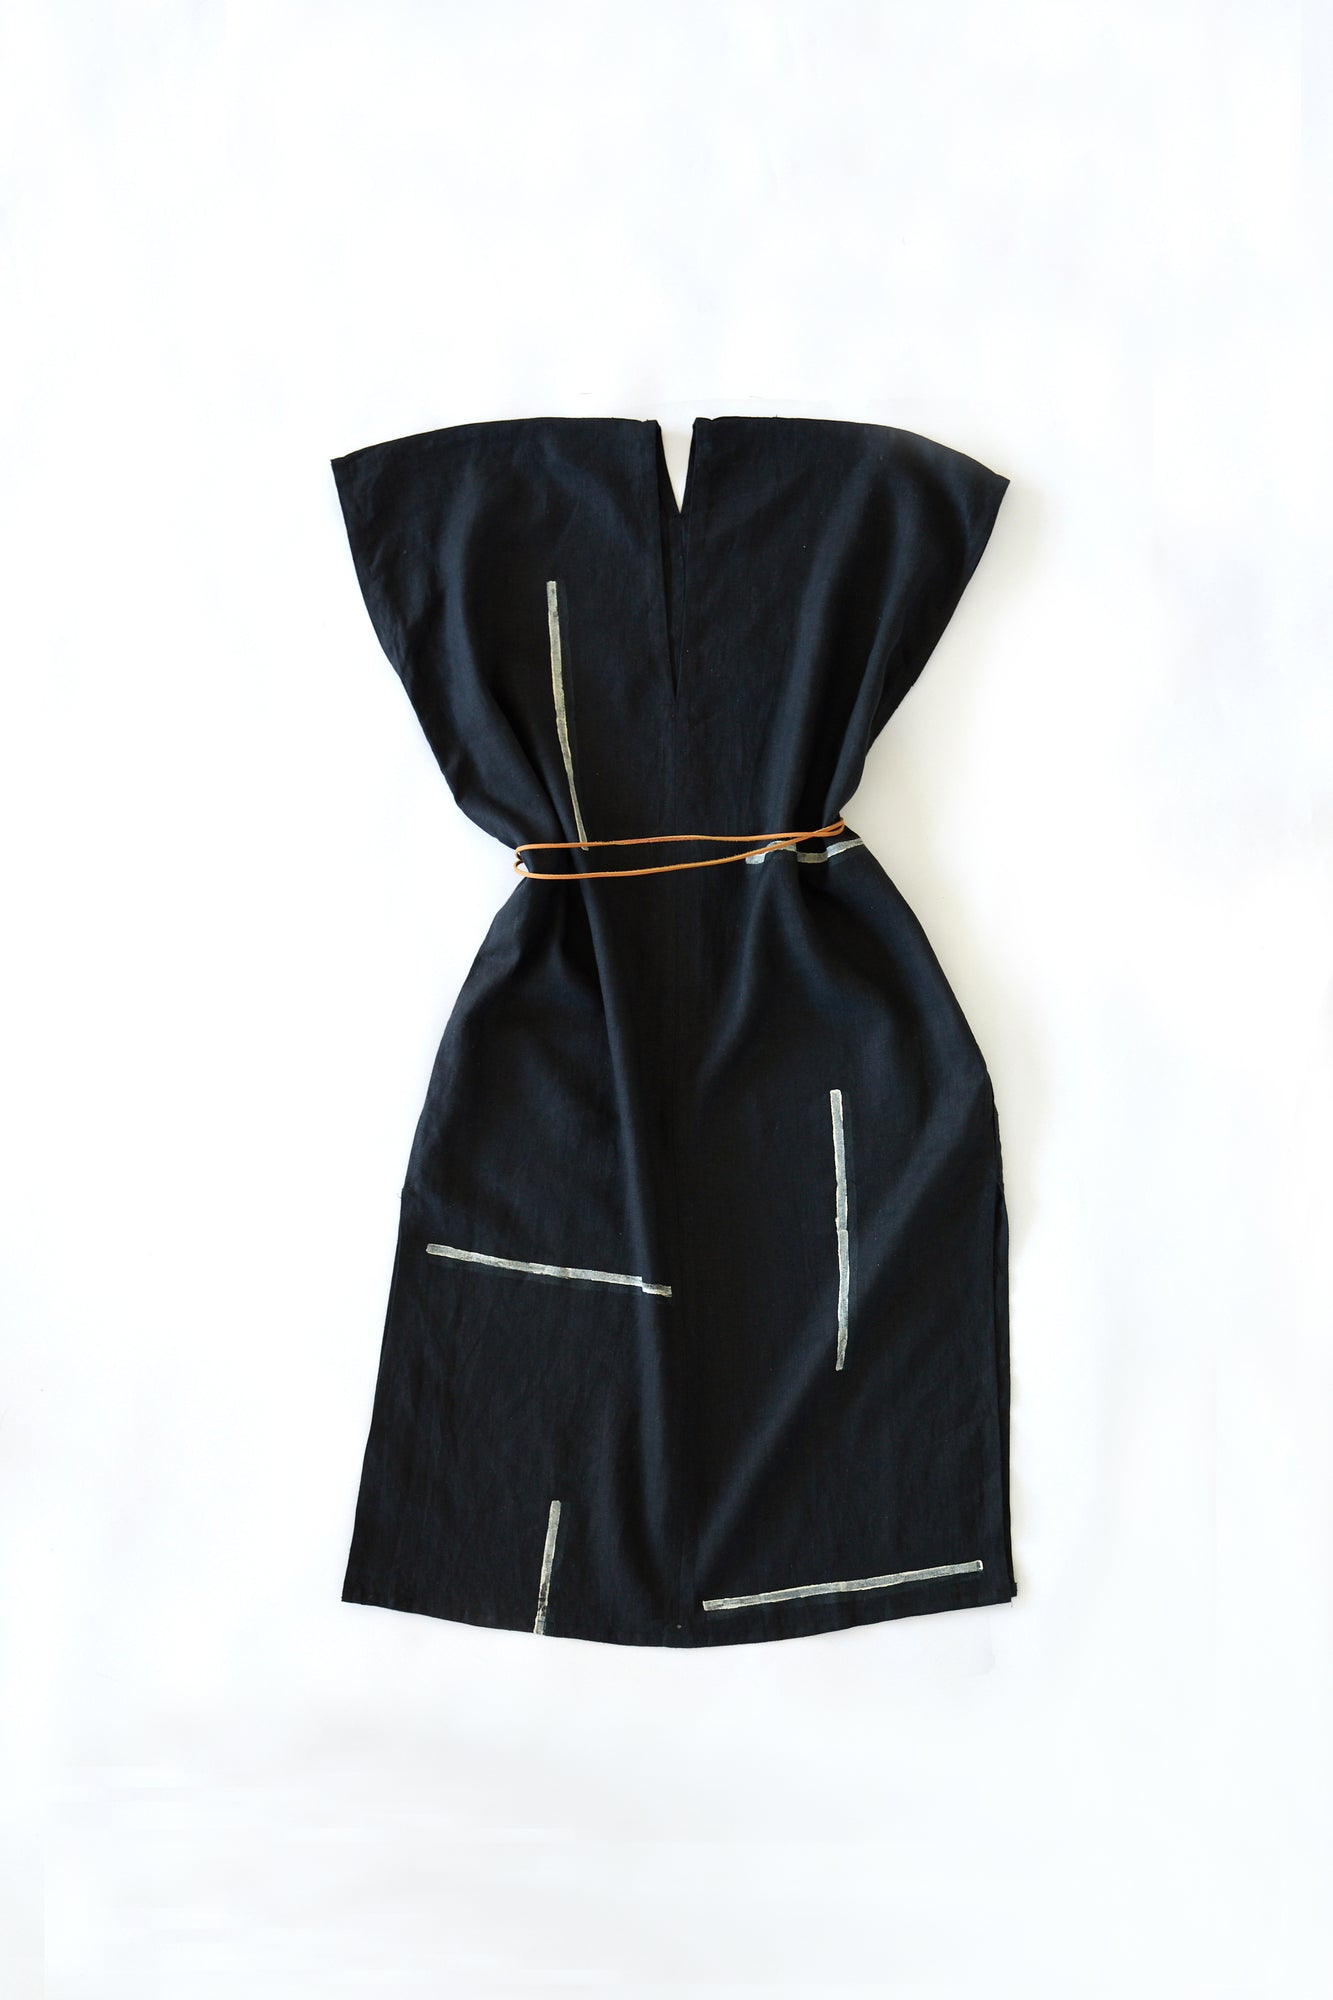 K'un Black House Dress